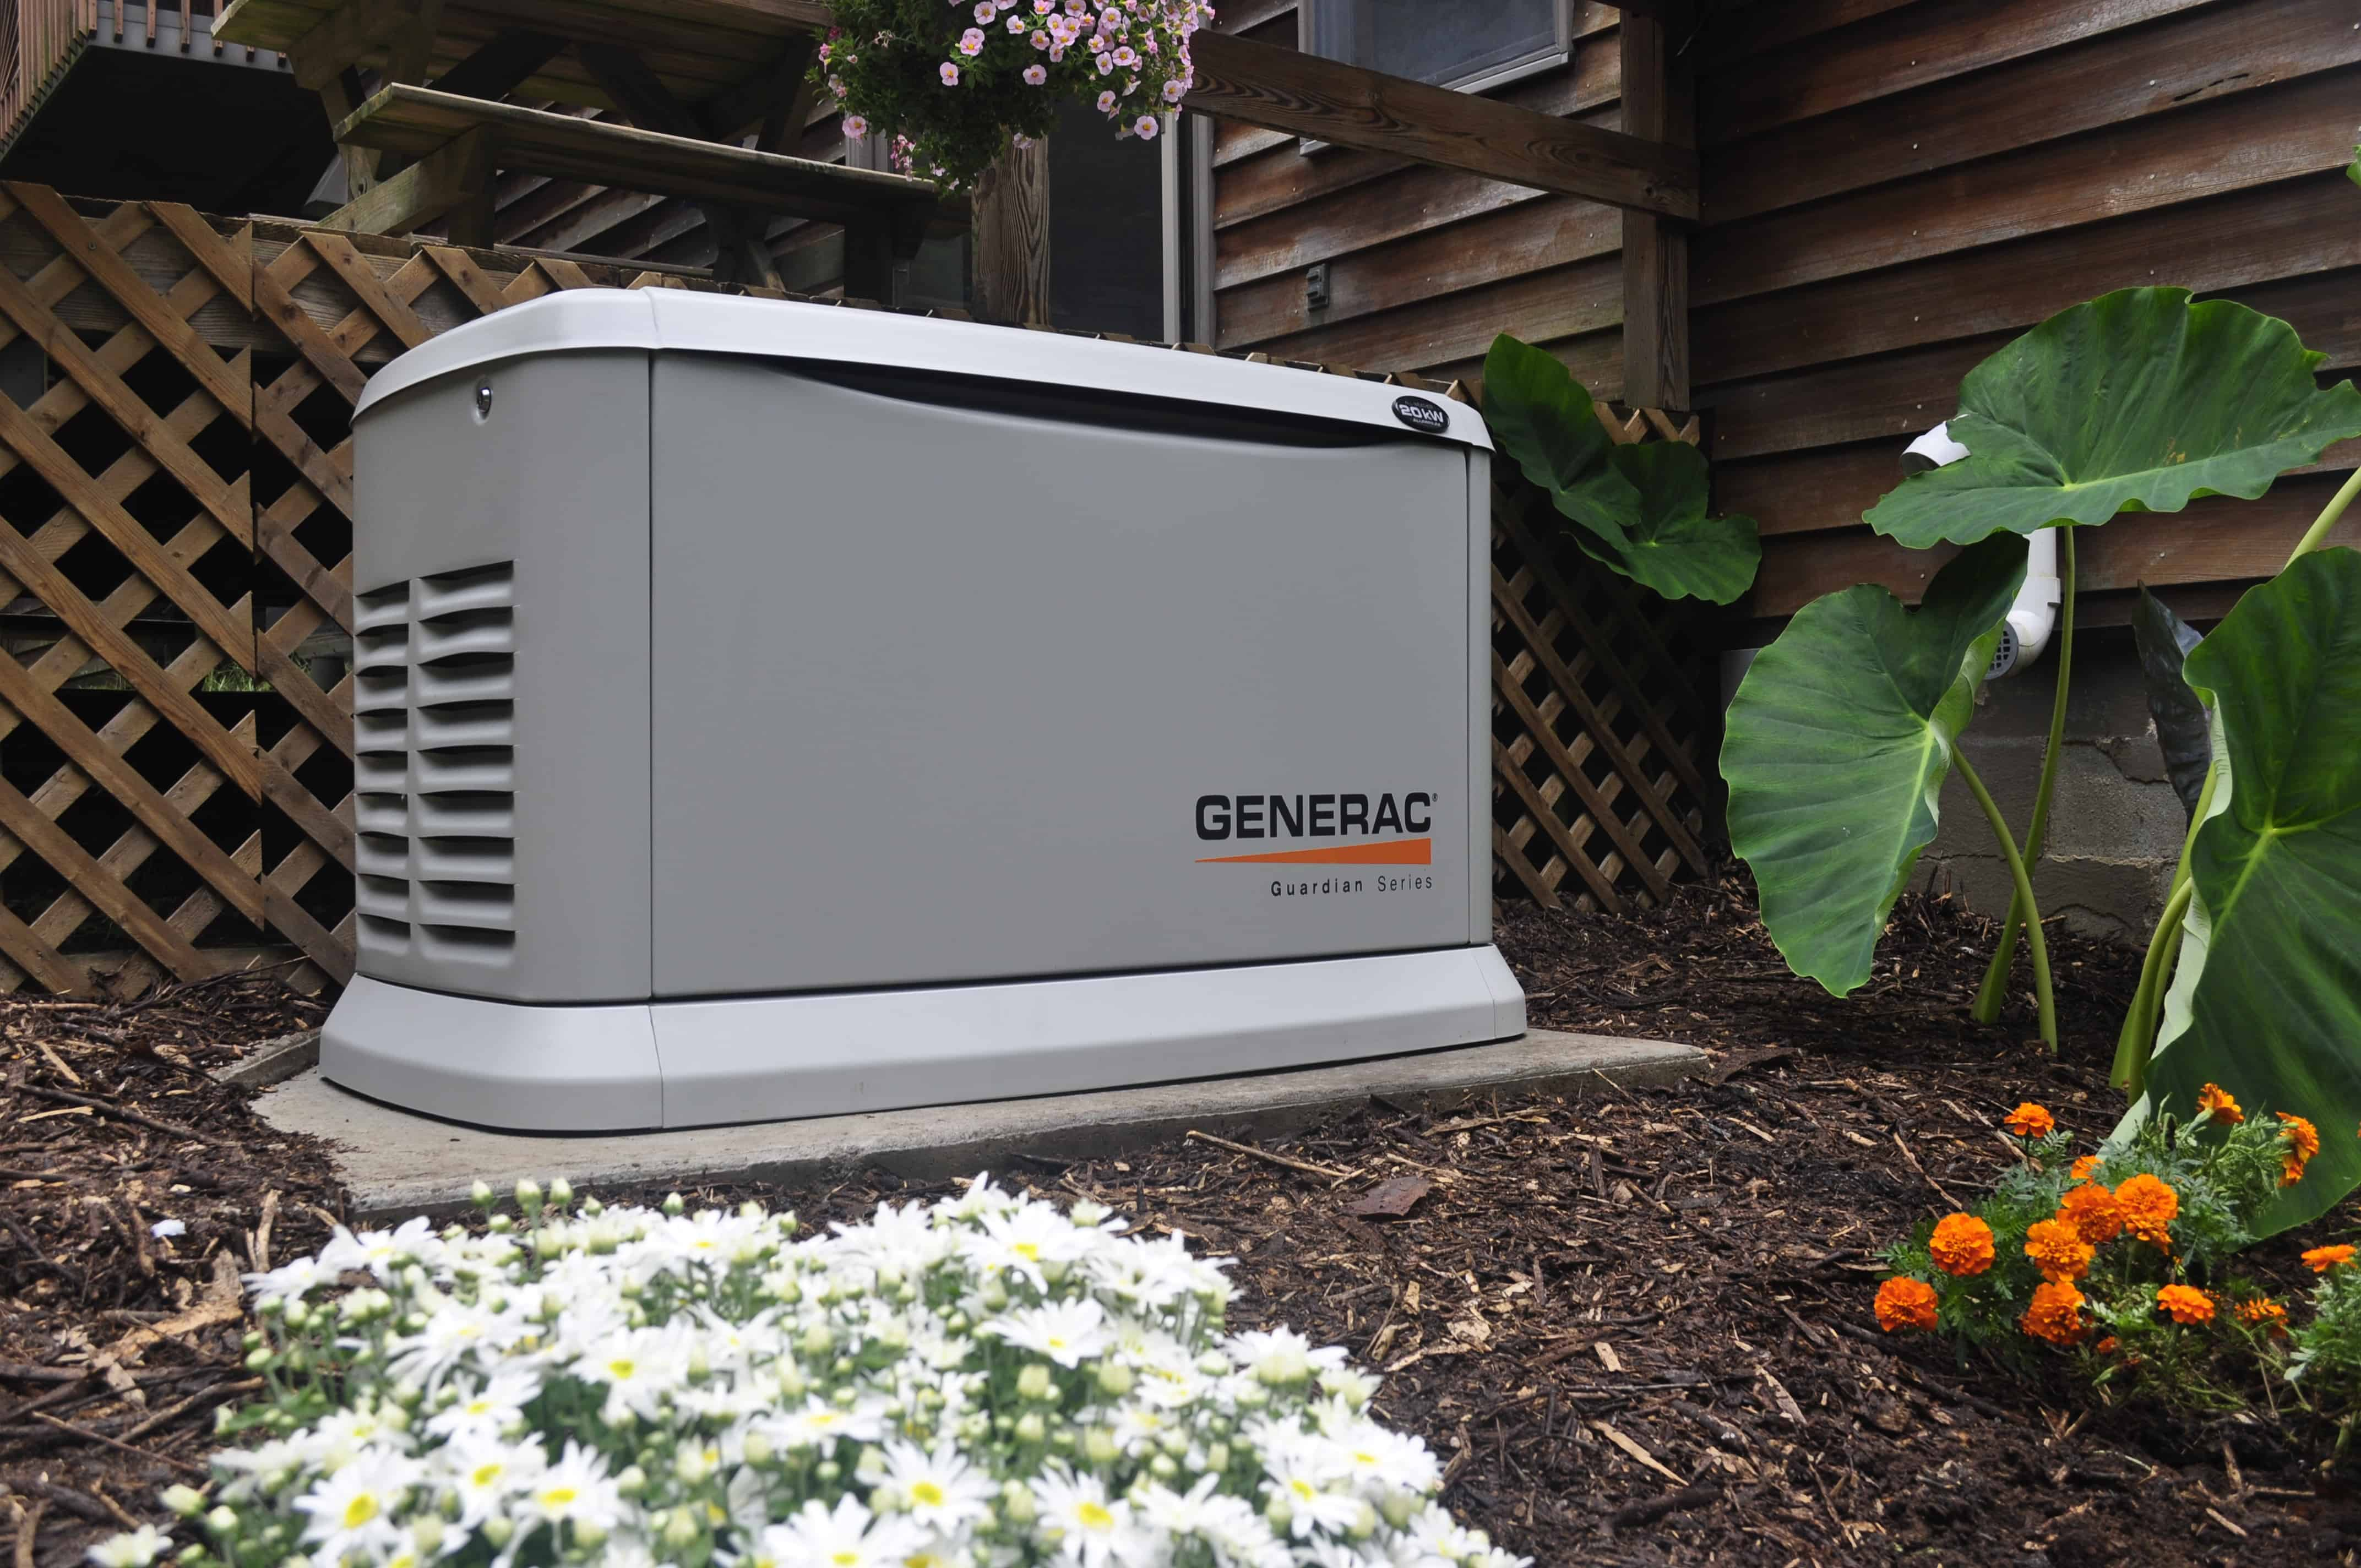 Generac Standby Generators for Homes and Businesses